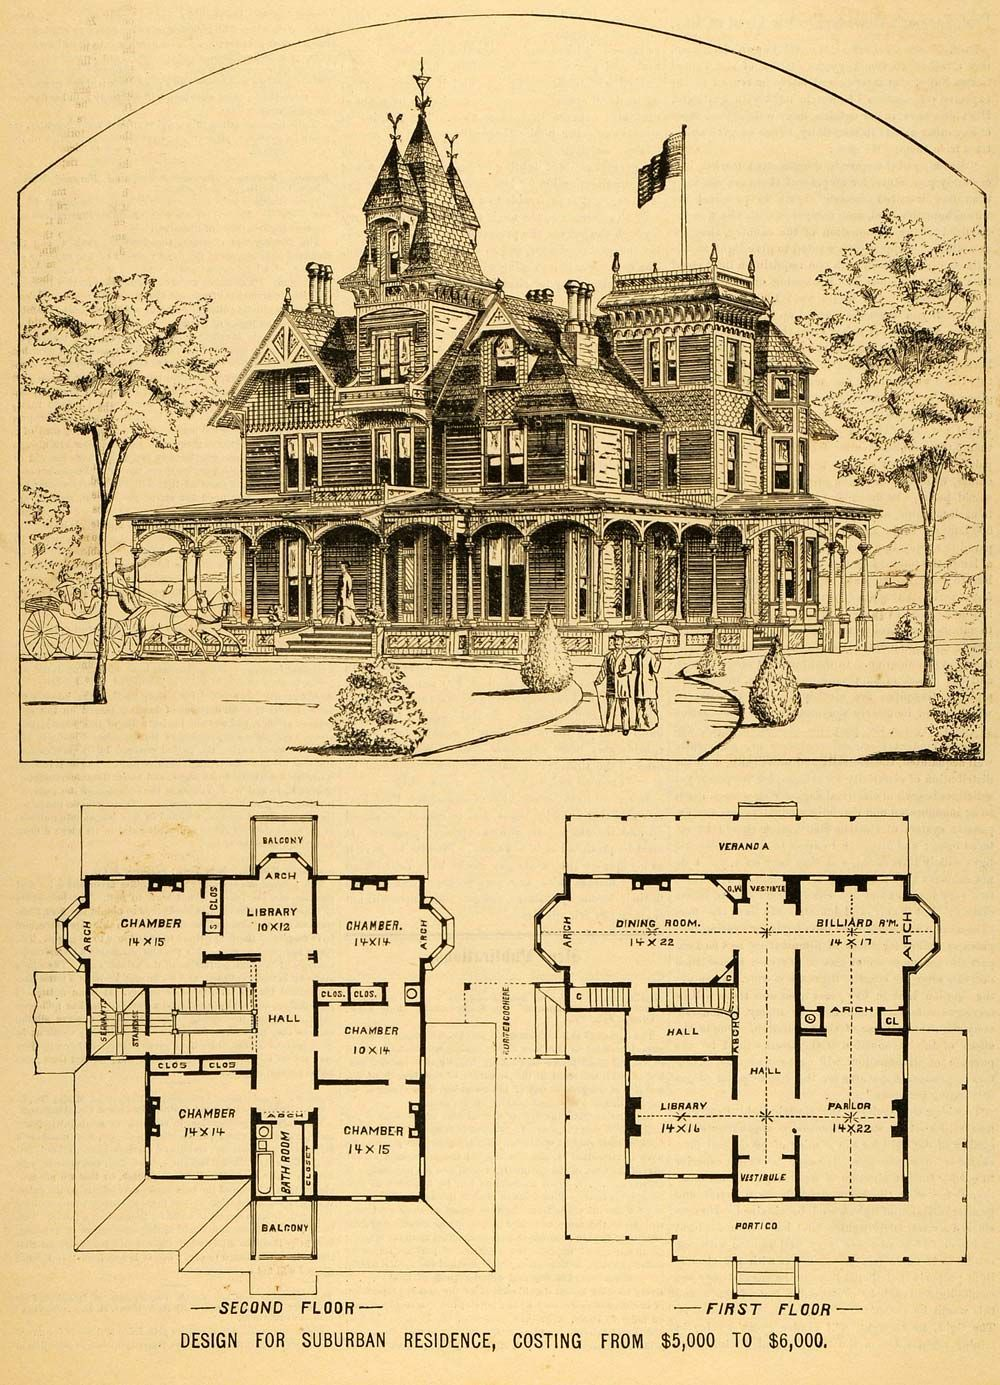 Vintage victorian house plans 1879 print victorian house for Mansion architecture designs